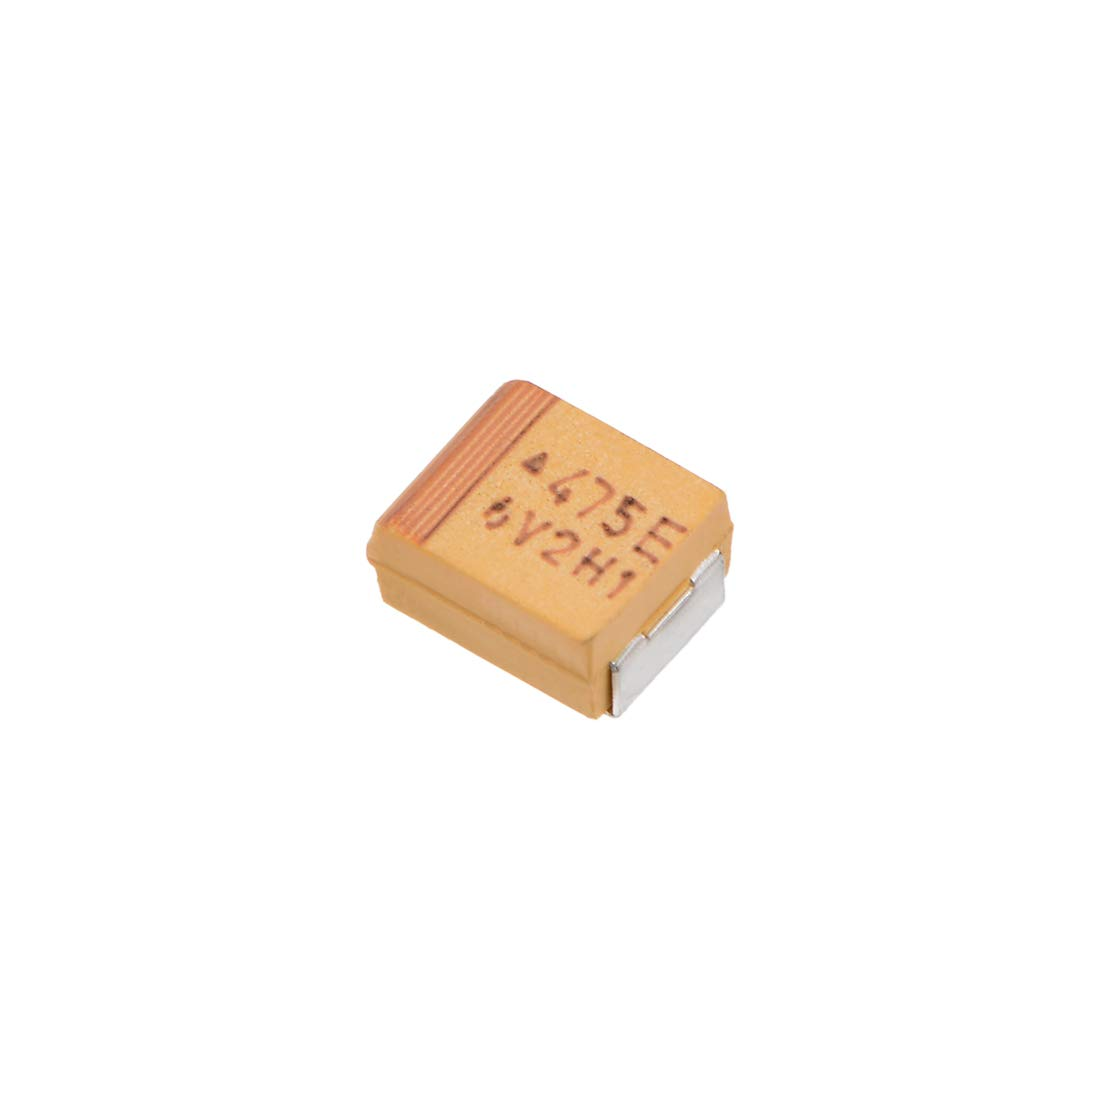 uxcell 4.7uF Chip SMD Tantalum Capacitor 25V 7343D 10/% Tolerance 4X2X2mm